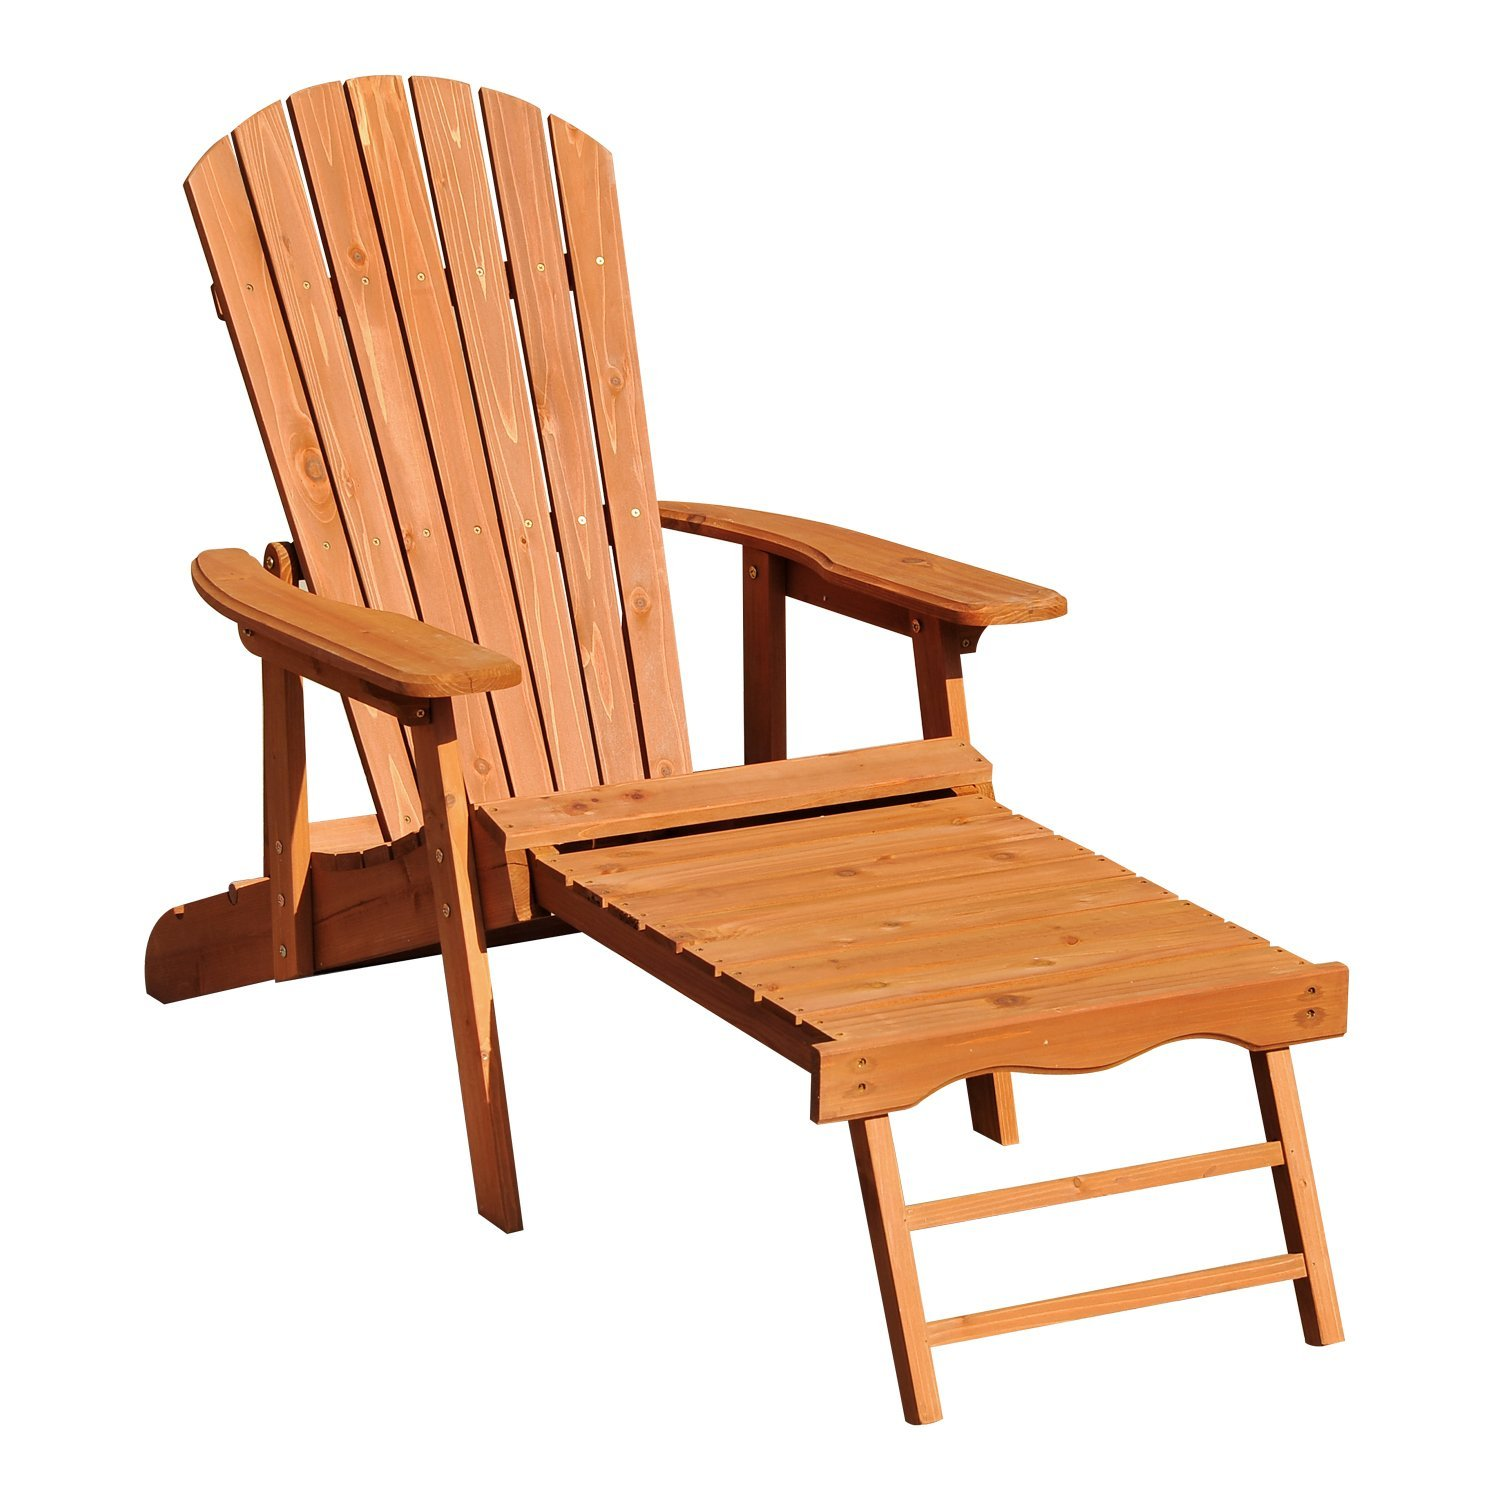 Outsunny Adirondack Chair Beach Bed Folding Adjustable Footrest Outdoor Garden Wooden 175x70x80 CM